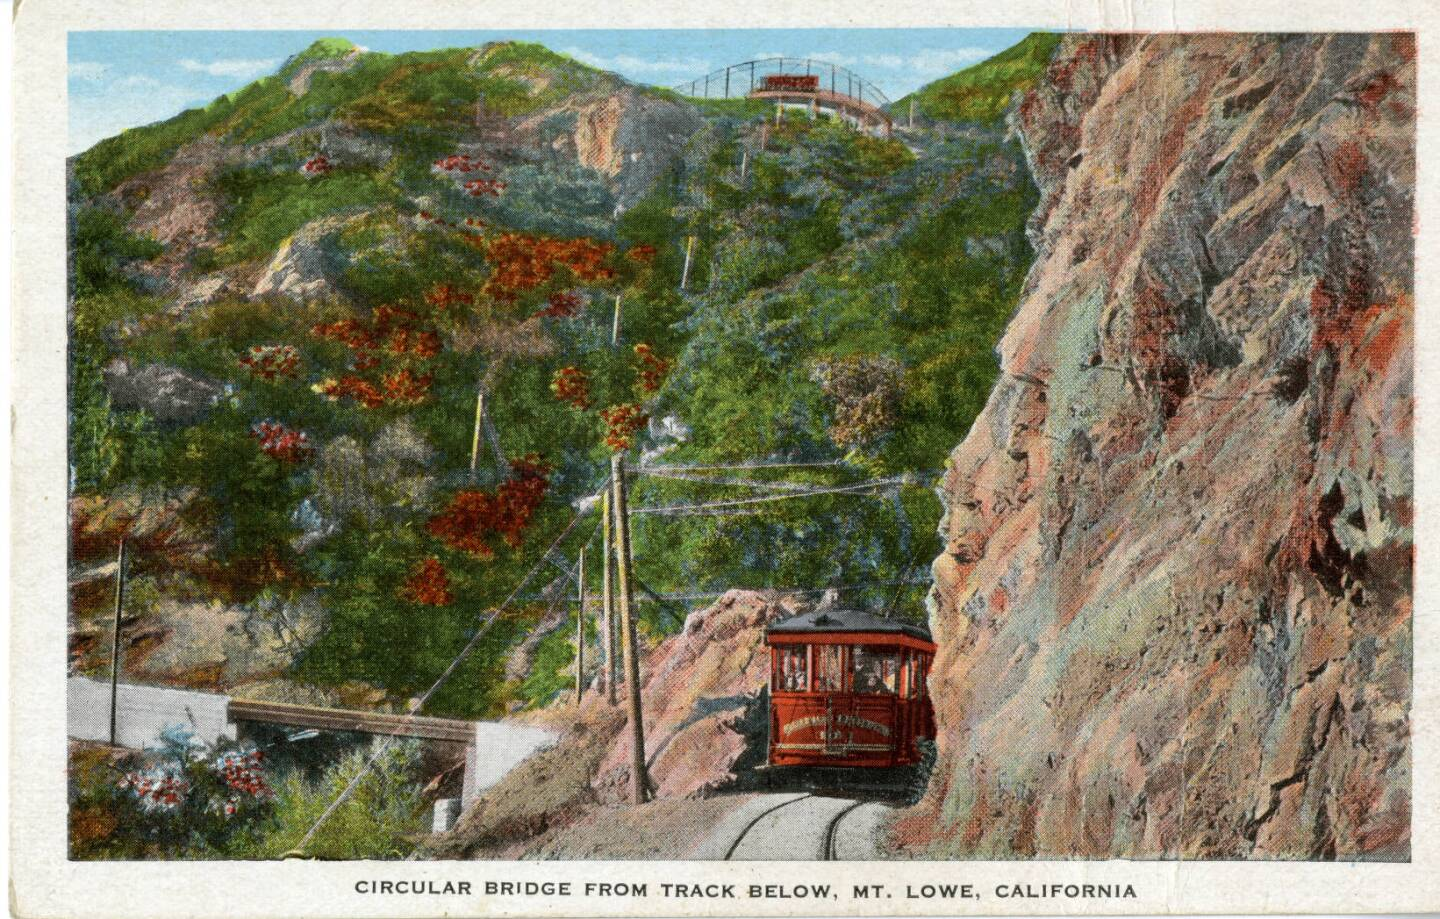 Postcard showing Circular Bridge from the tracks of the Mt. Lowe Railway below, circa 1920/30